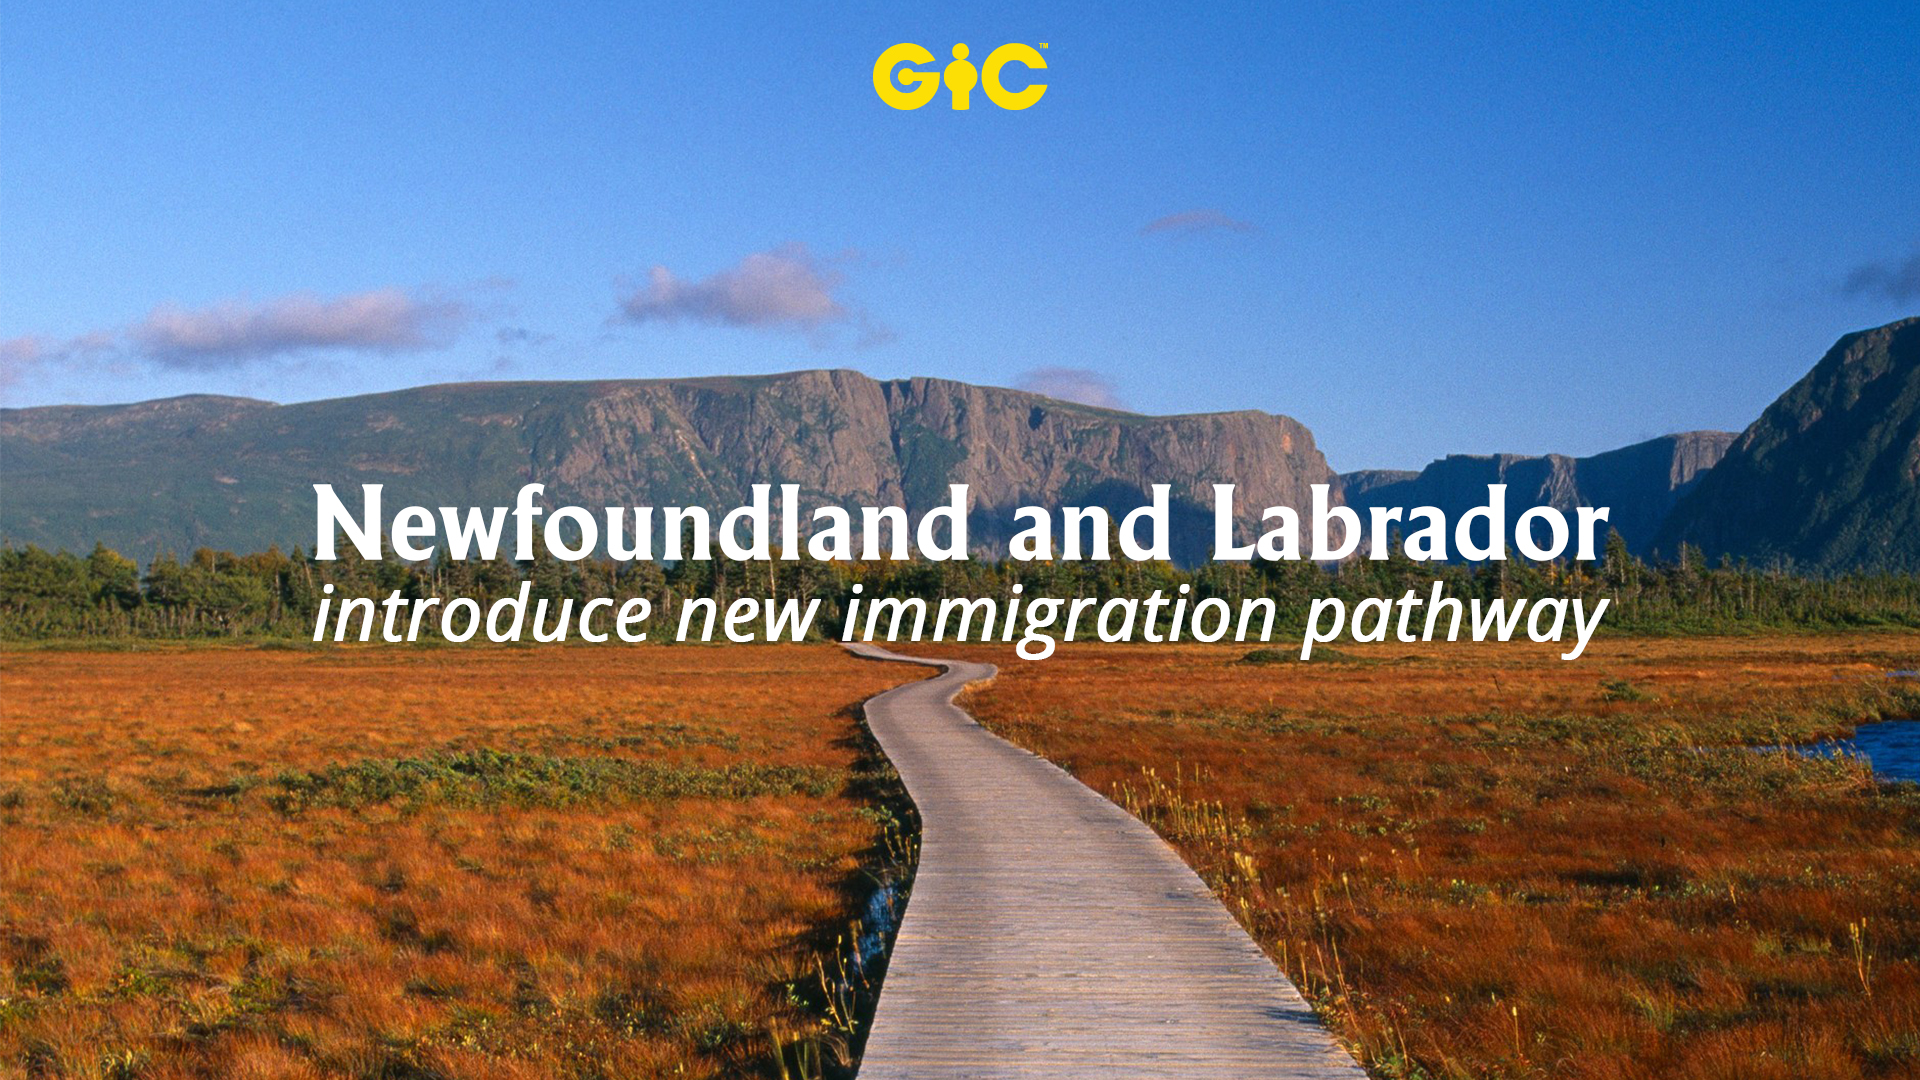 Newfoundland and Labrador introduce new immigration pathway